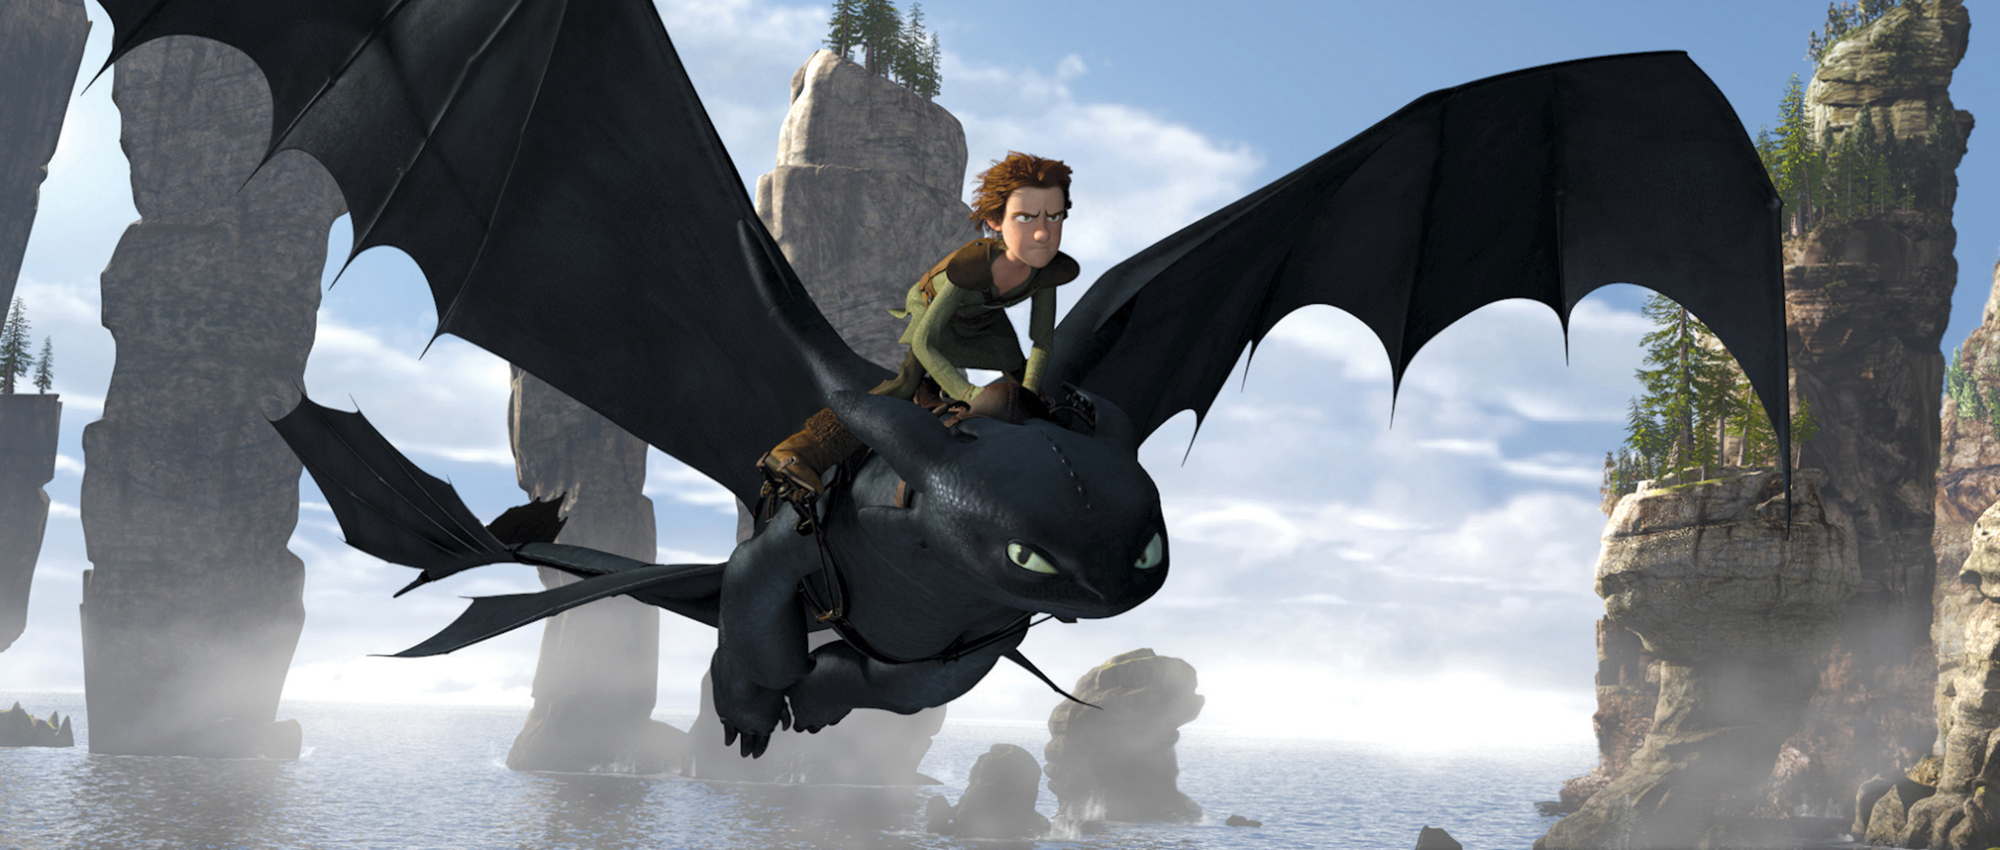 7. 'How to Train Your Dragon' (2010)